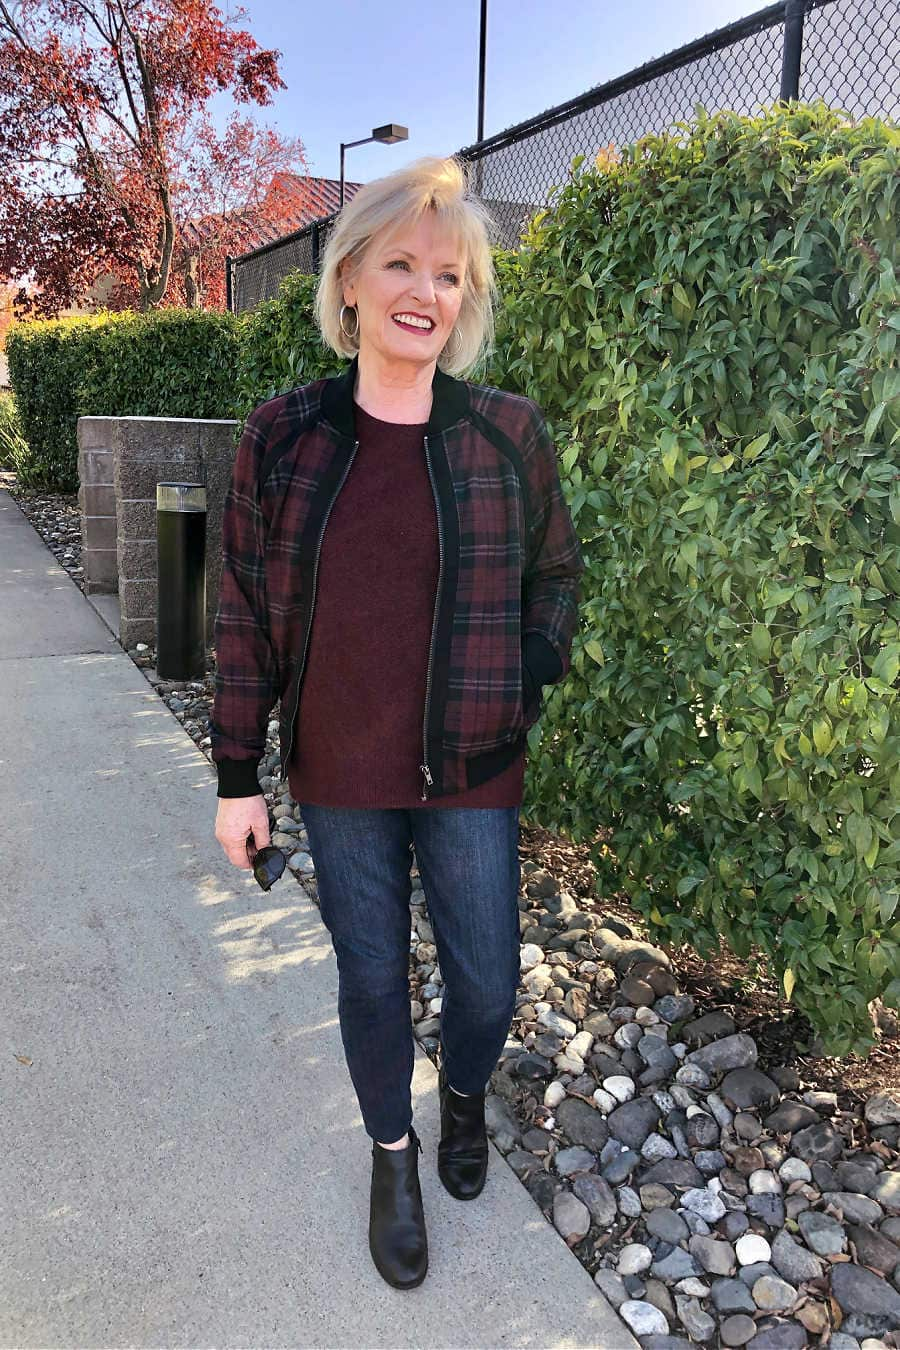 liverpool outfit on fashion blogger jennifer of a well styled life